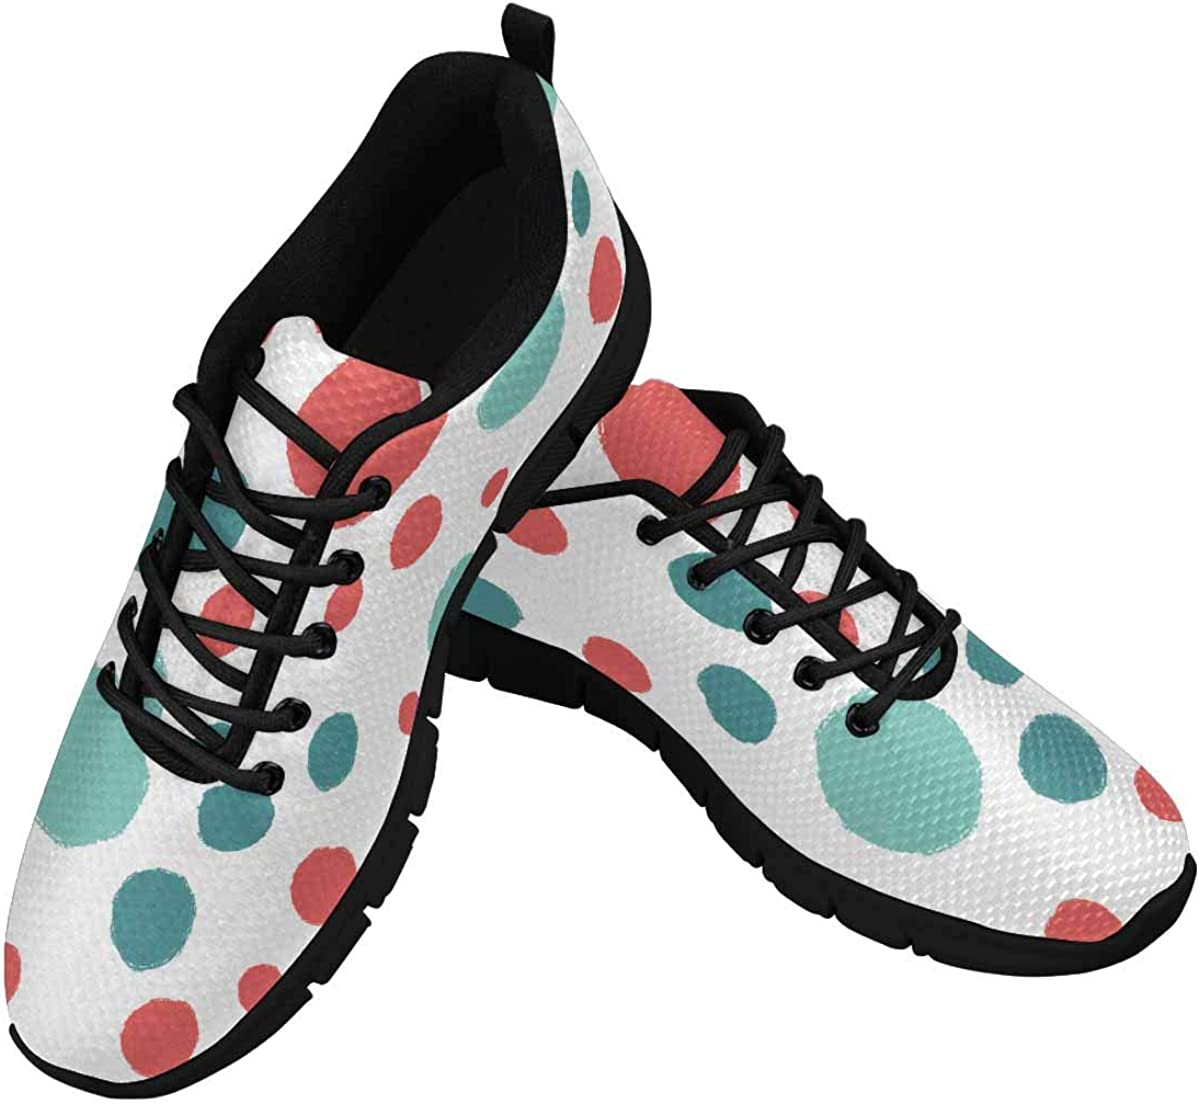 INTERESTPRINT Bright Polka Dots Background Women's Athletic Mesh Breathable Casual Sneakers Fashion Tennis Shoes